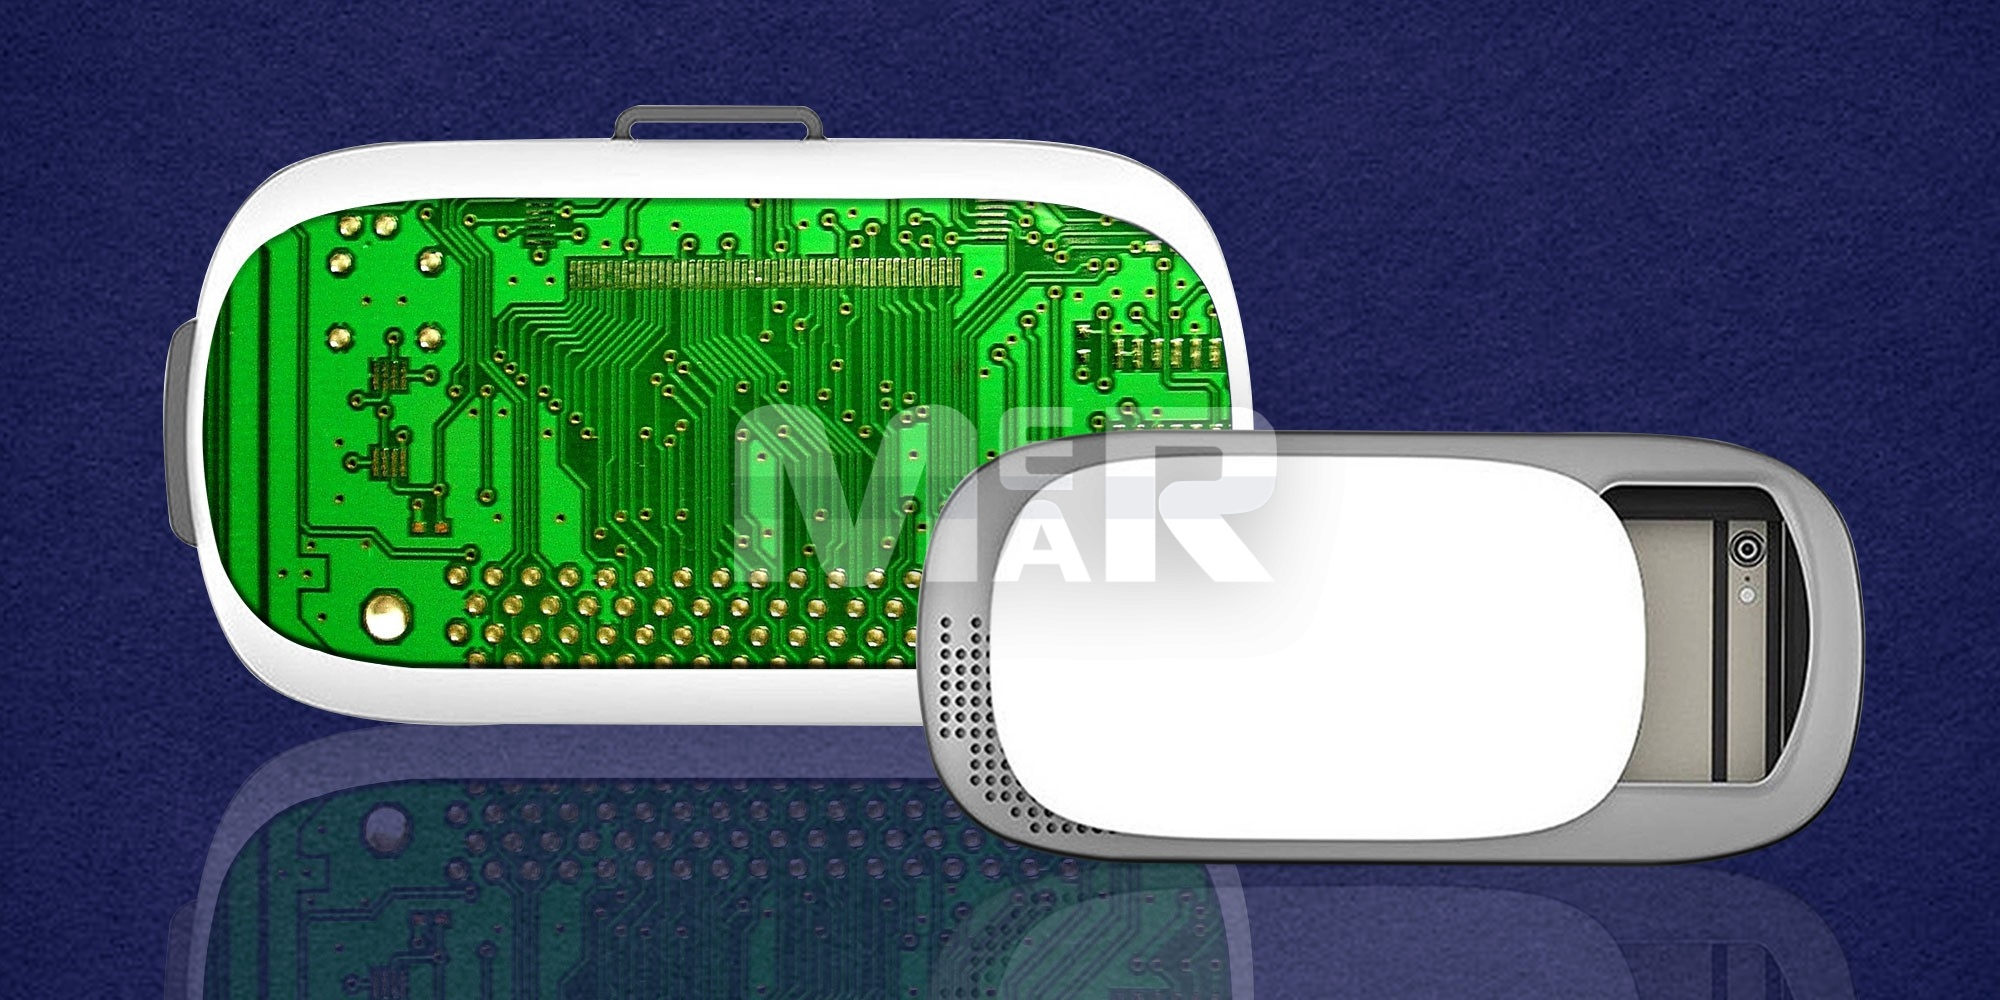 Pcb Assembly Trends In Consumer Electronics Industry Mermar Custom Made Green Board Electronic Circuit Boards Pcba Shaping A Rosy Future Of The